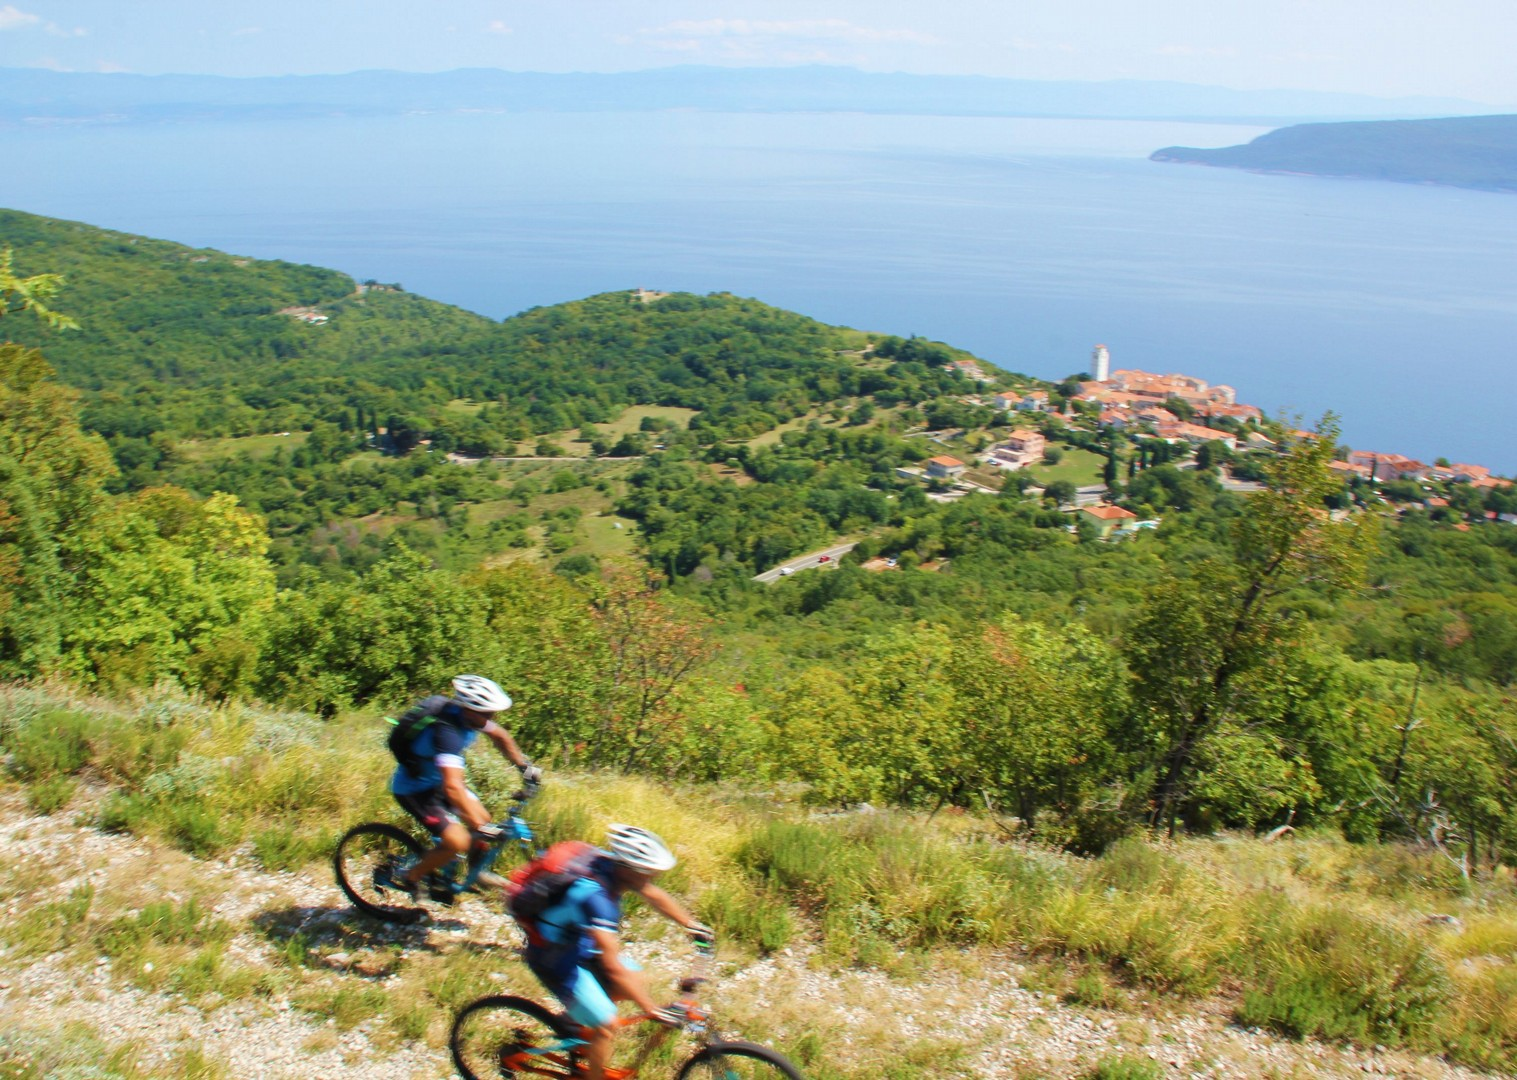 mtb-tour-in-croatia-terra-magica-skedaddle.JPG - Croatia - Terra Magica - Mountain Biking